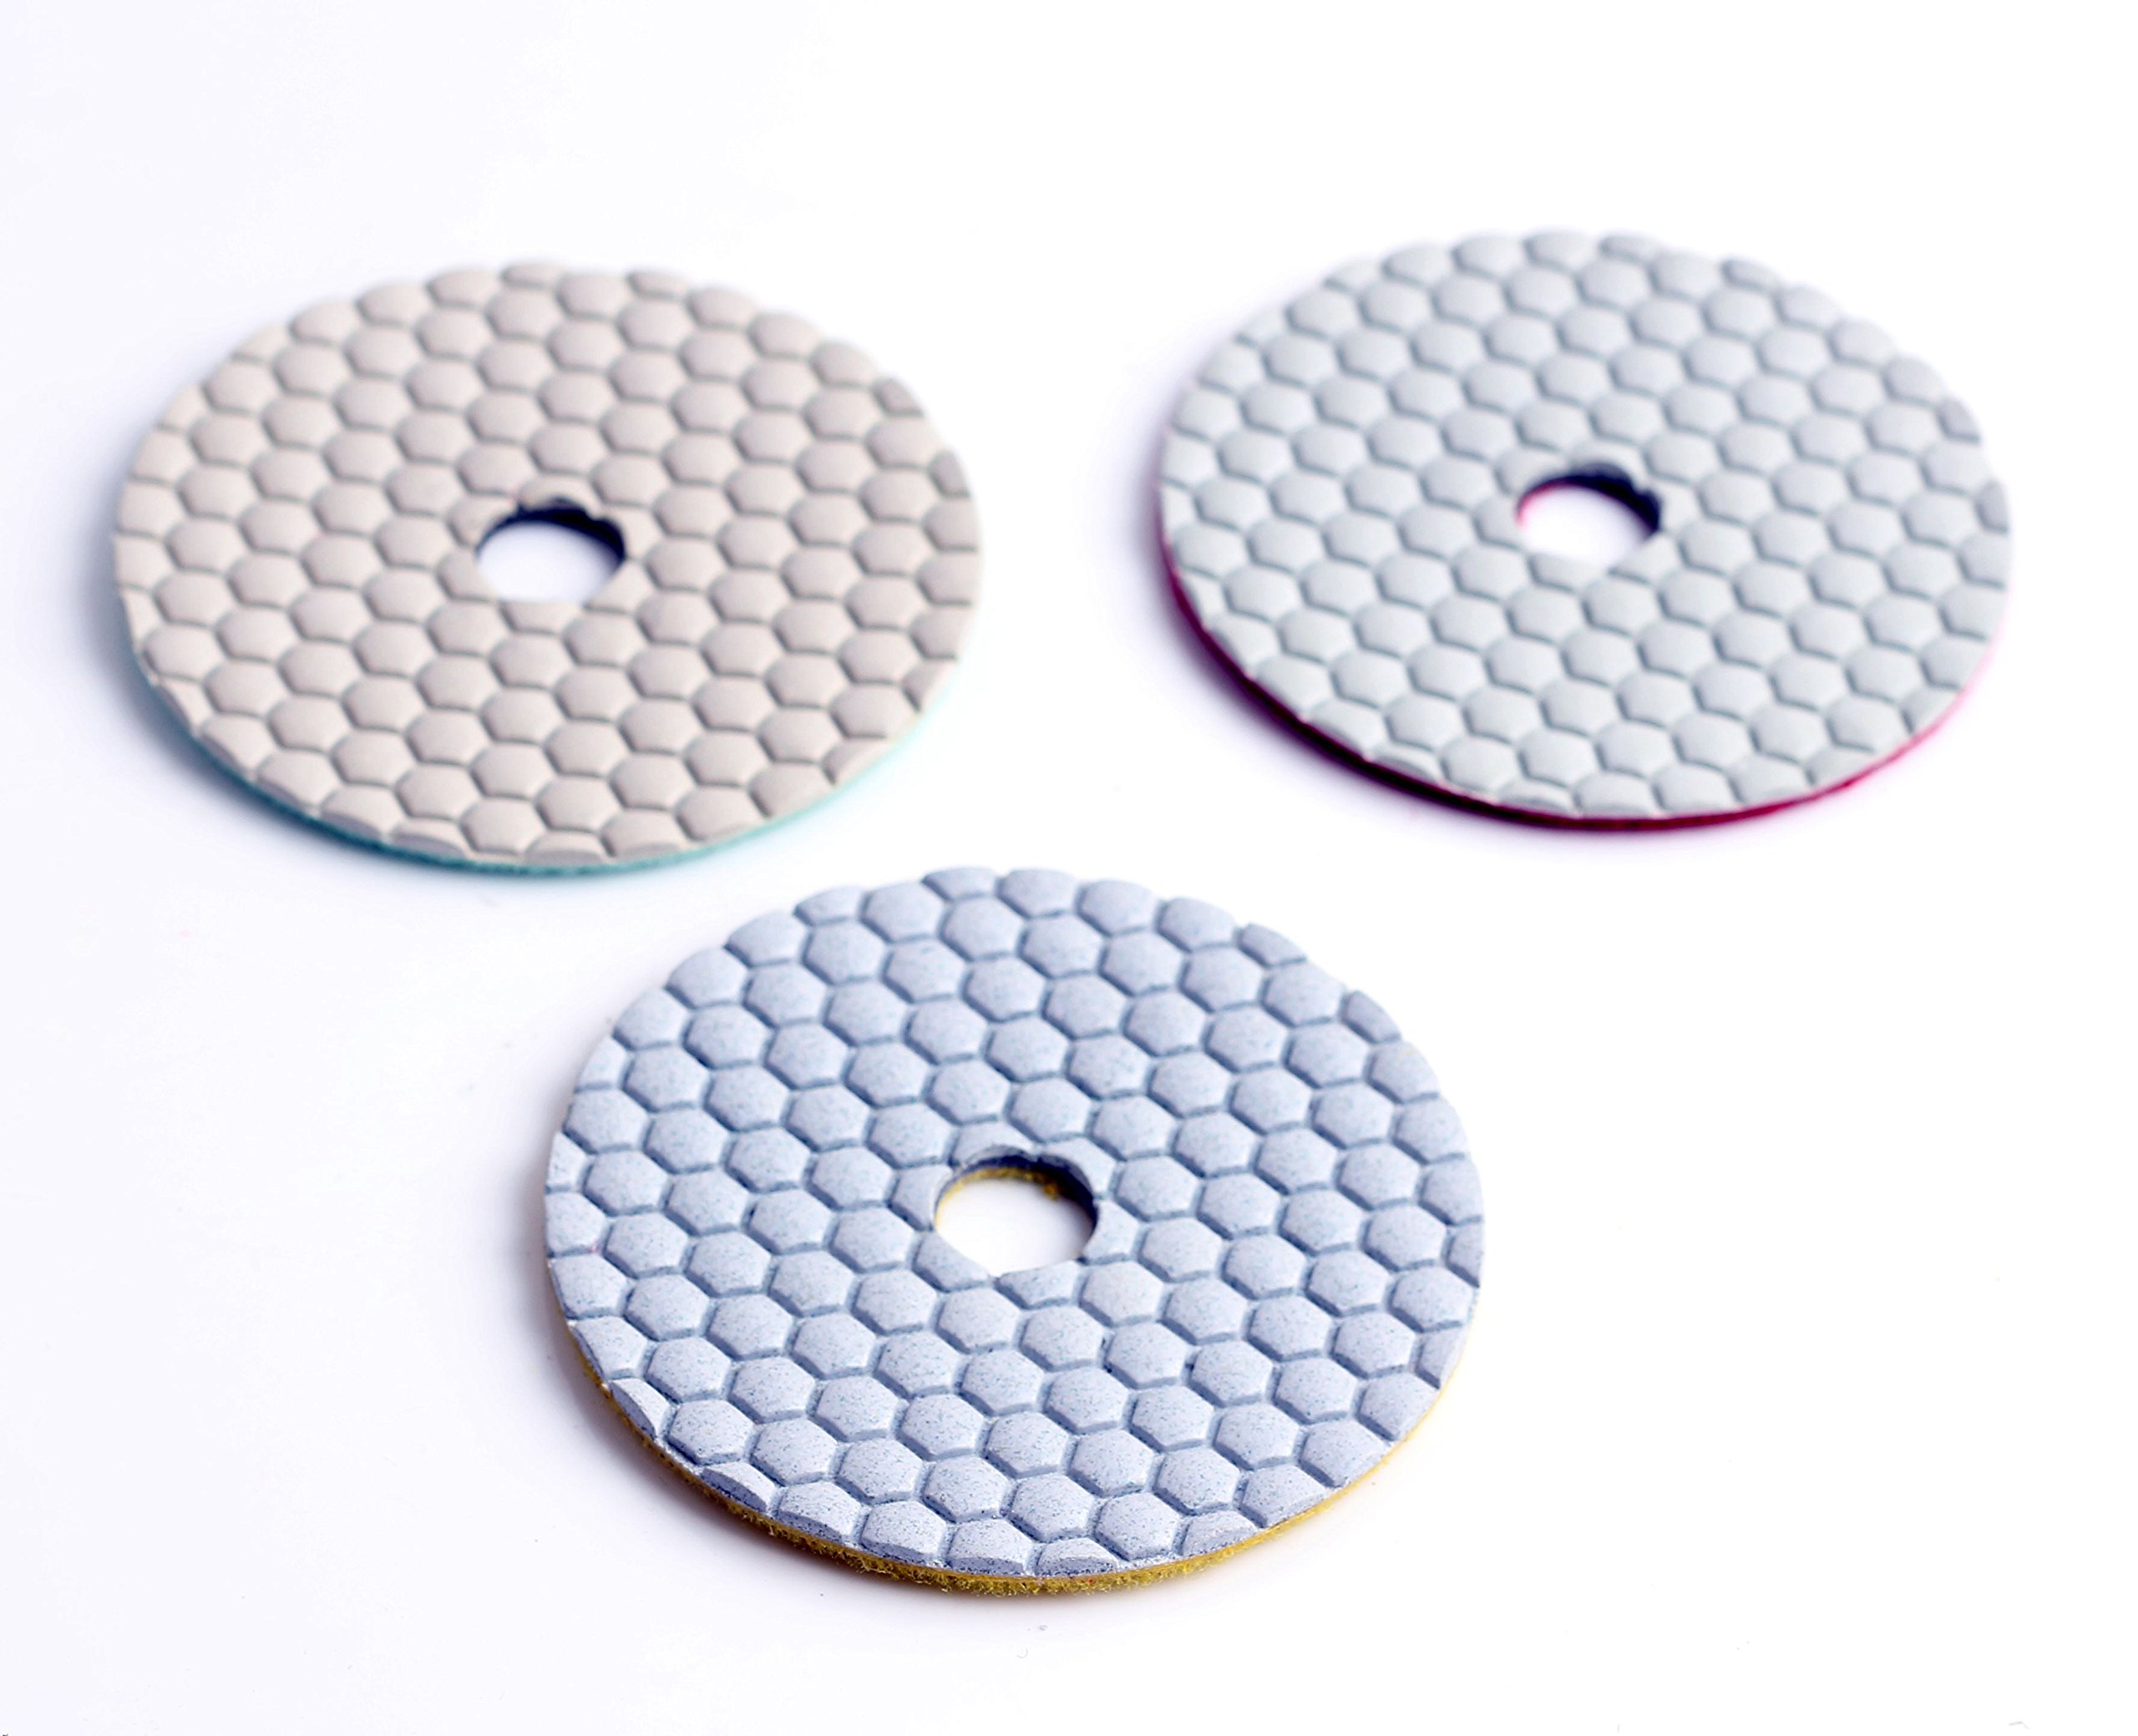 4 Inch Dry Flexible 3 Step Polishing Pad for Stone Marble and Granite -3 Pc Grit 1# 2# 3#